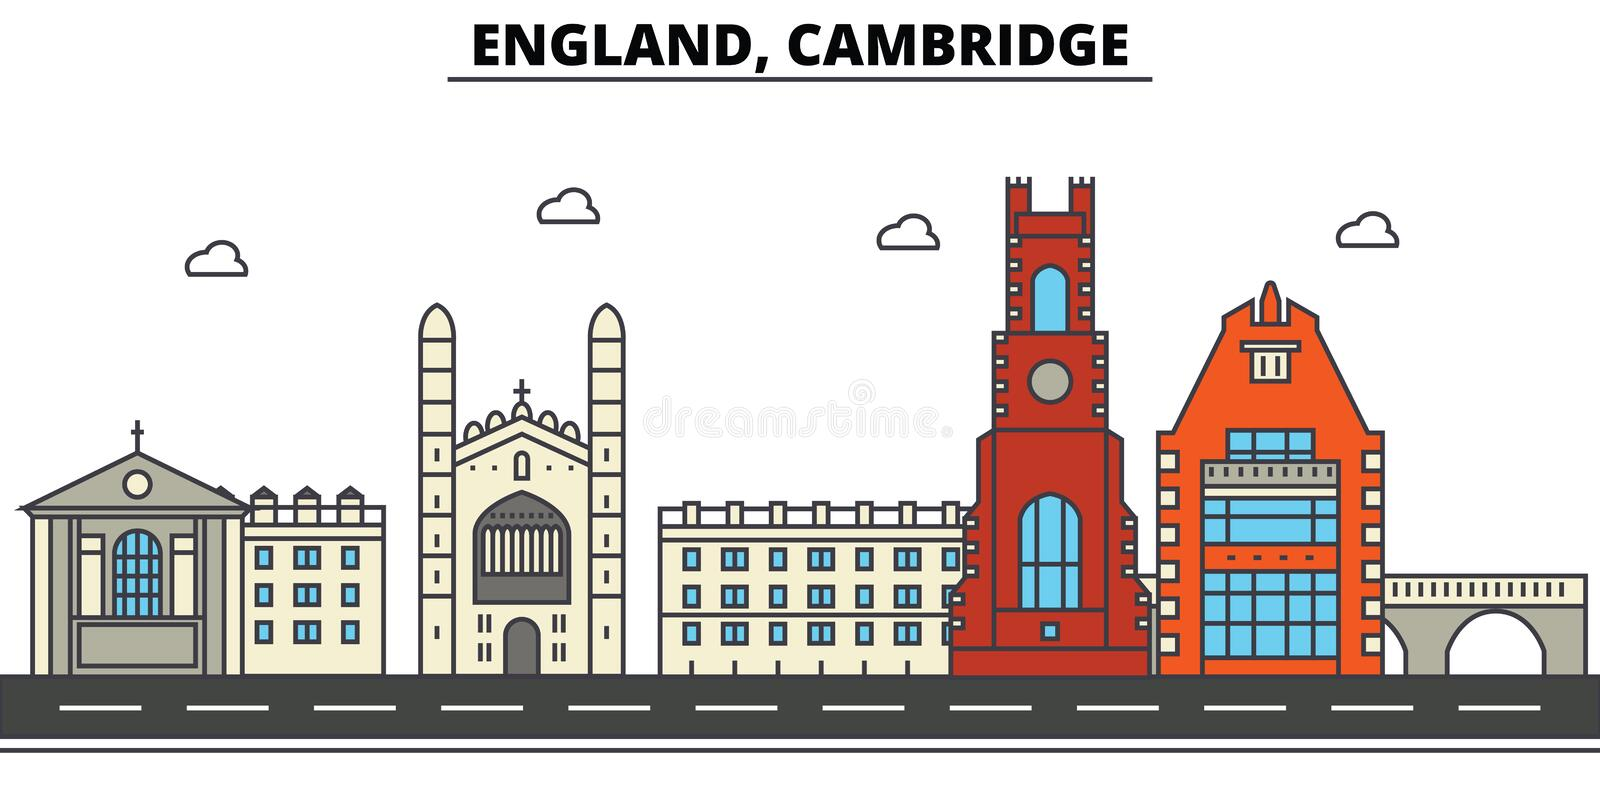 Engeland, Cambridge De architectuur Editable van de stadshorizon stock illustratie